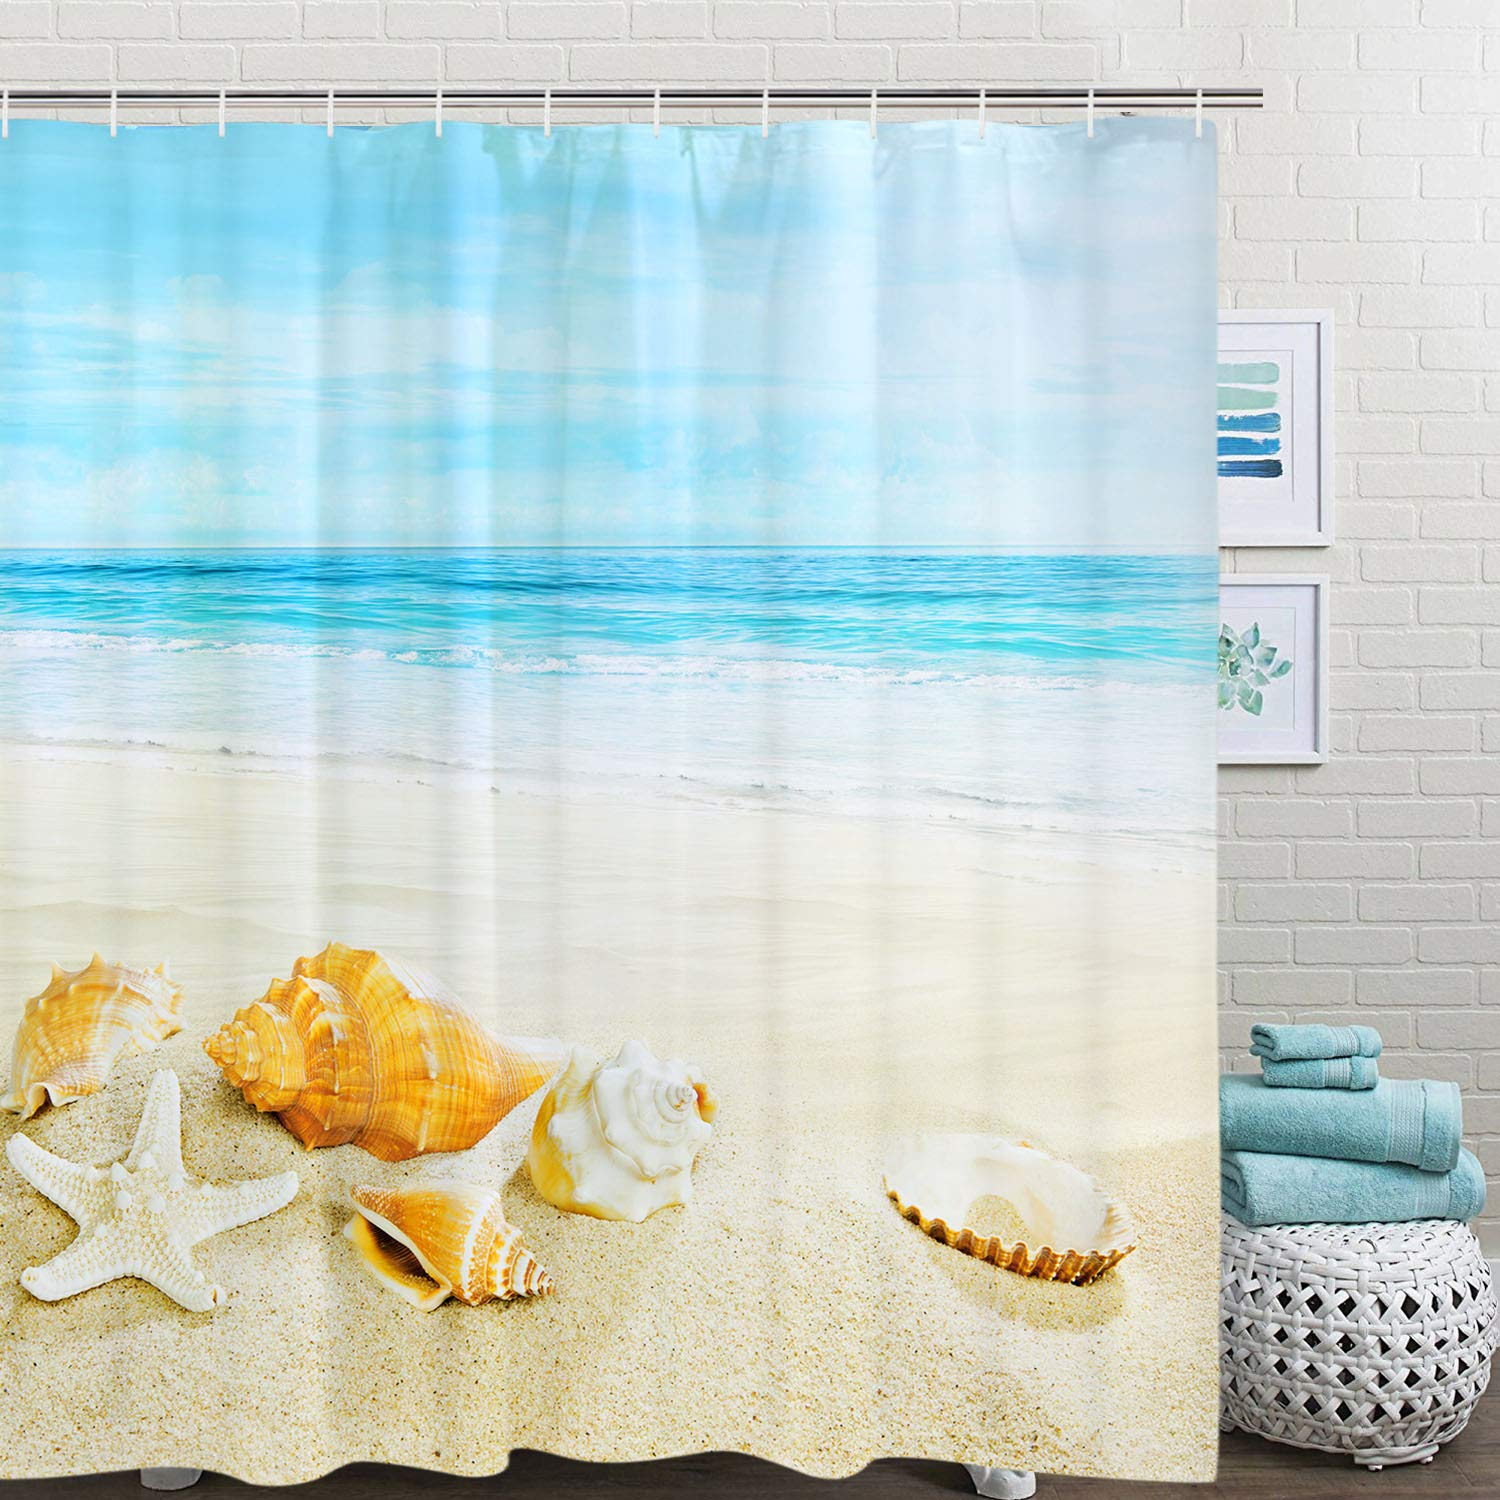 BLEUM CADE Sea Beach Theme Shower Curtain Ocean Starfish Bathroom Shower Curtain Durable Mildew Resistant Waterproof with 12 Hooks